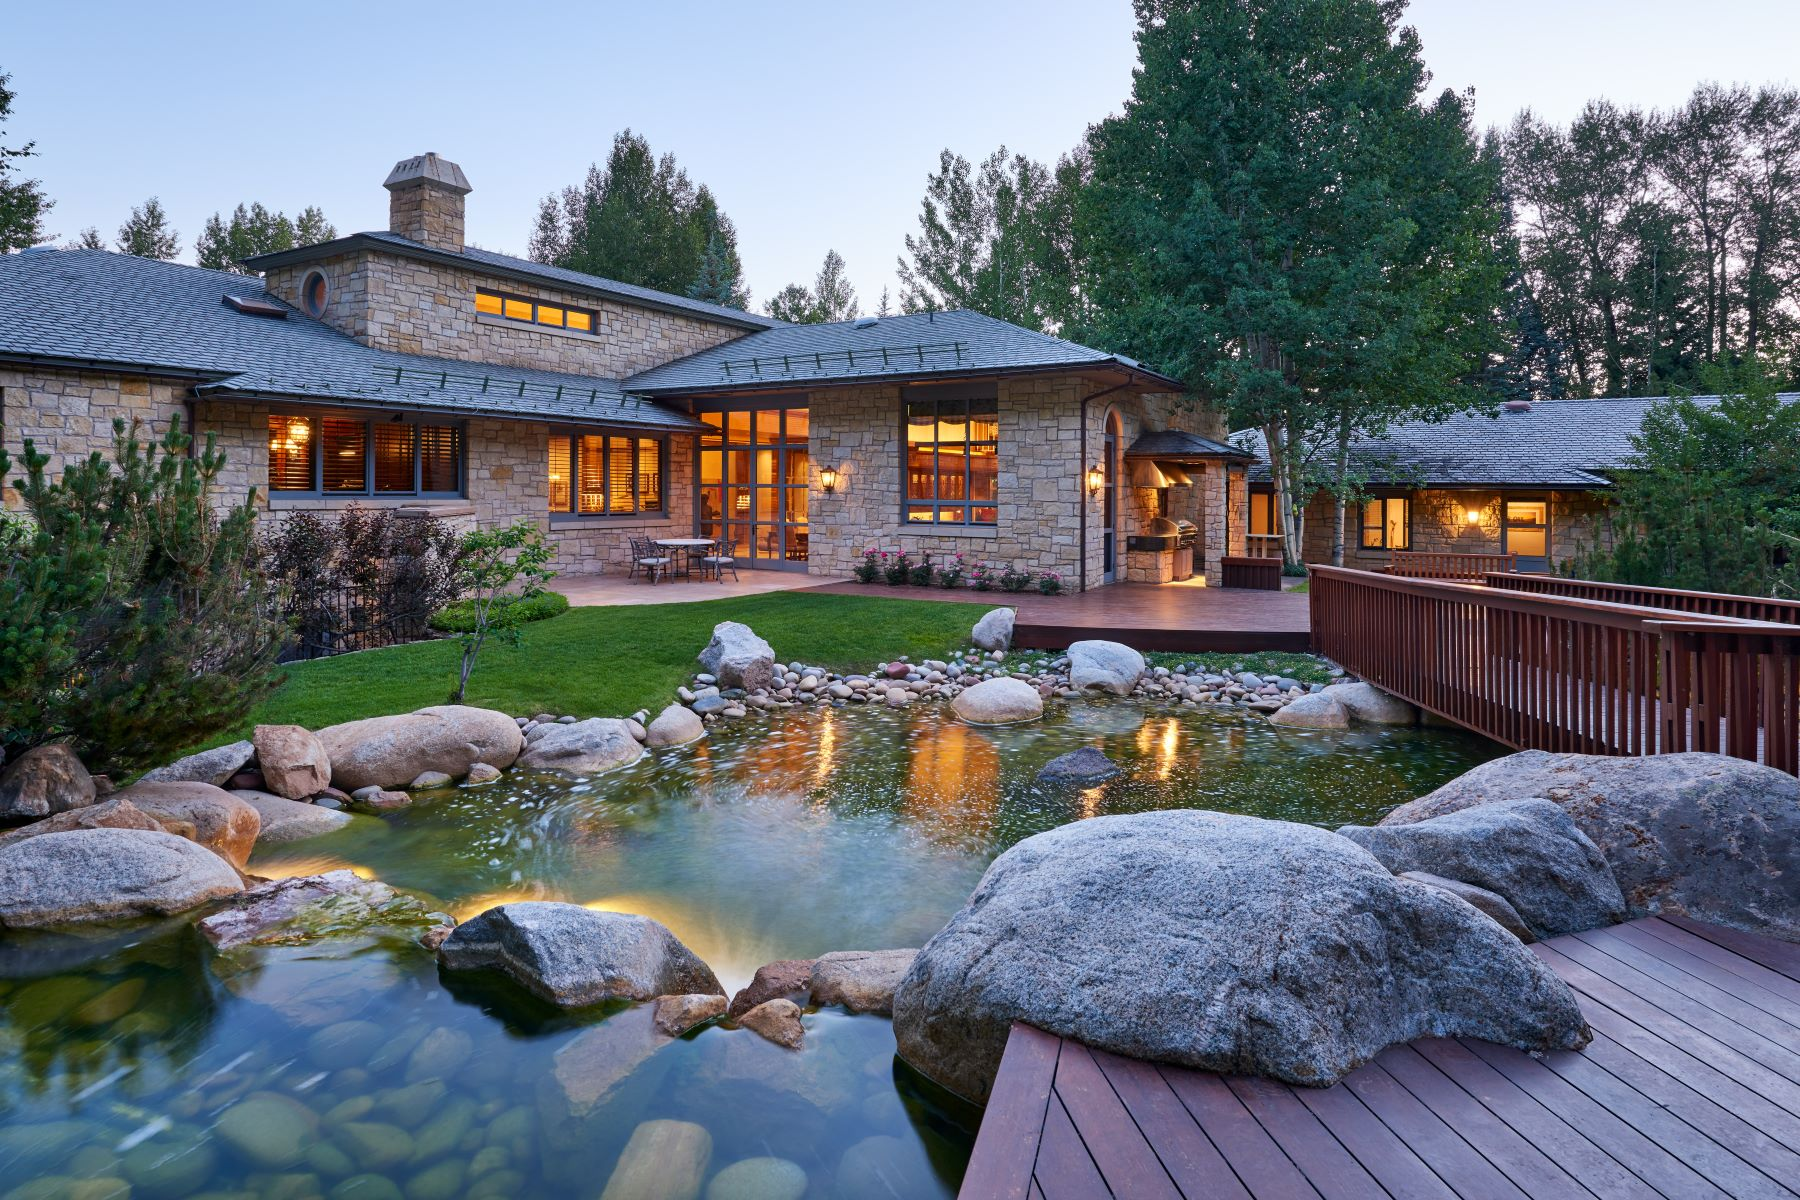 Single Family Homes for Sale at Magnificent Aspen Estate 711 Willoughby Way, Aspen, Colorado 81611 United States